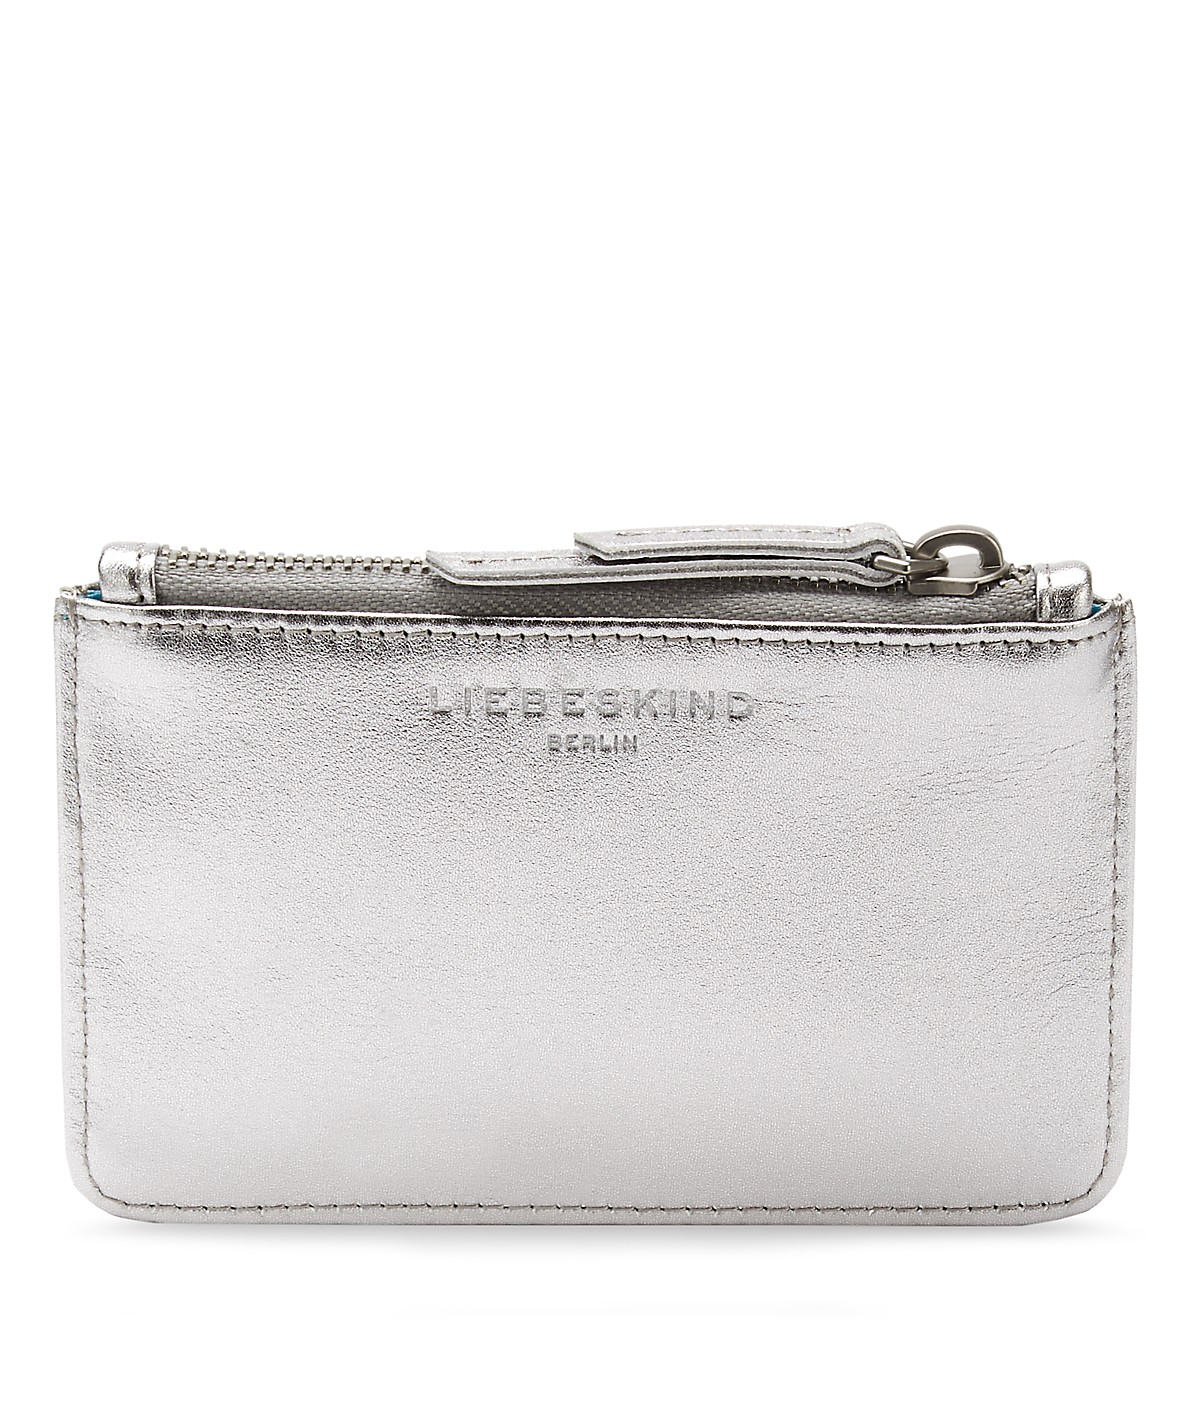 Matti key pouch from liebeskind